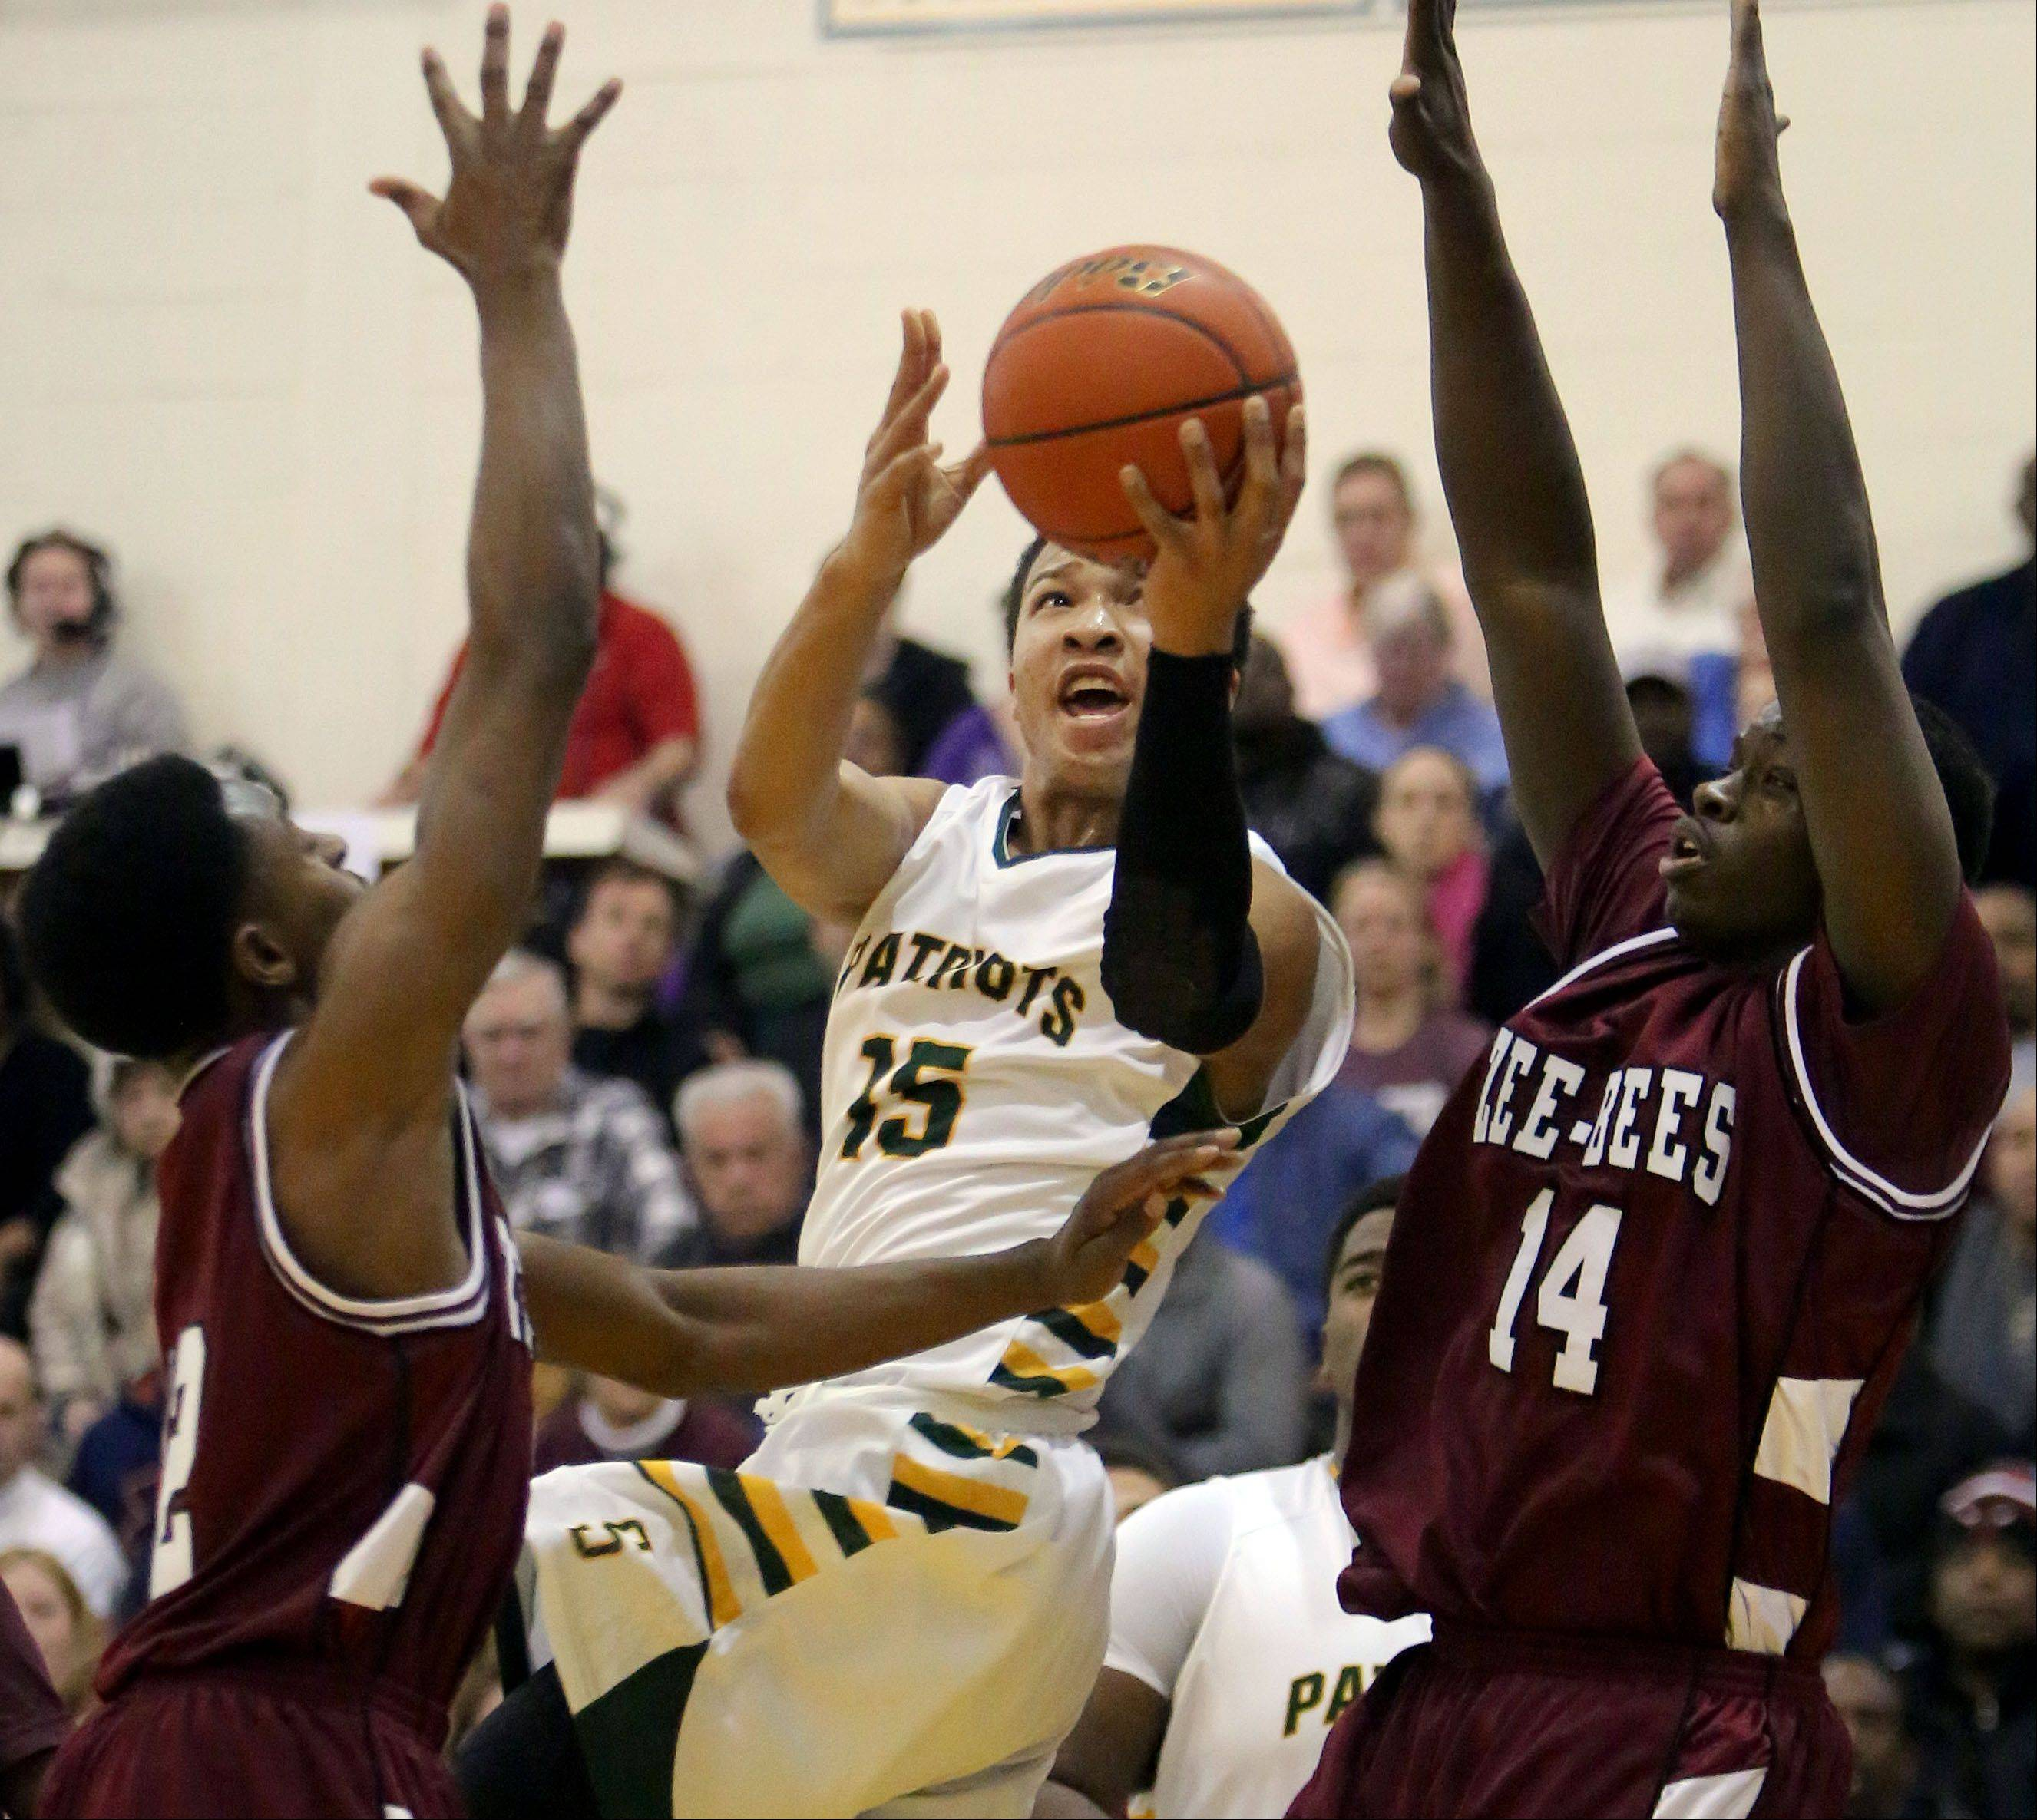 Stevenson's Jalen Brunson, middle, splits between Zion Benton's Mubarak Bakr, left, and Milik Yarbrough.